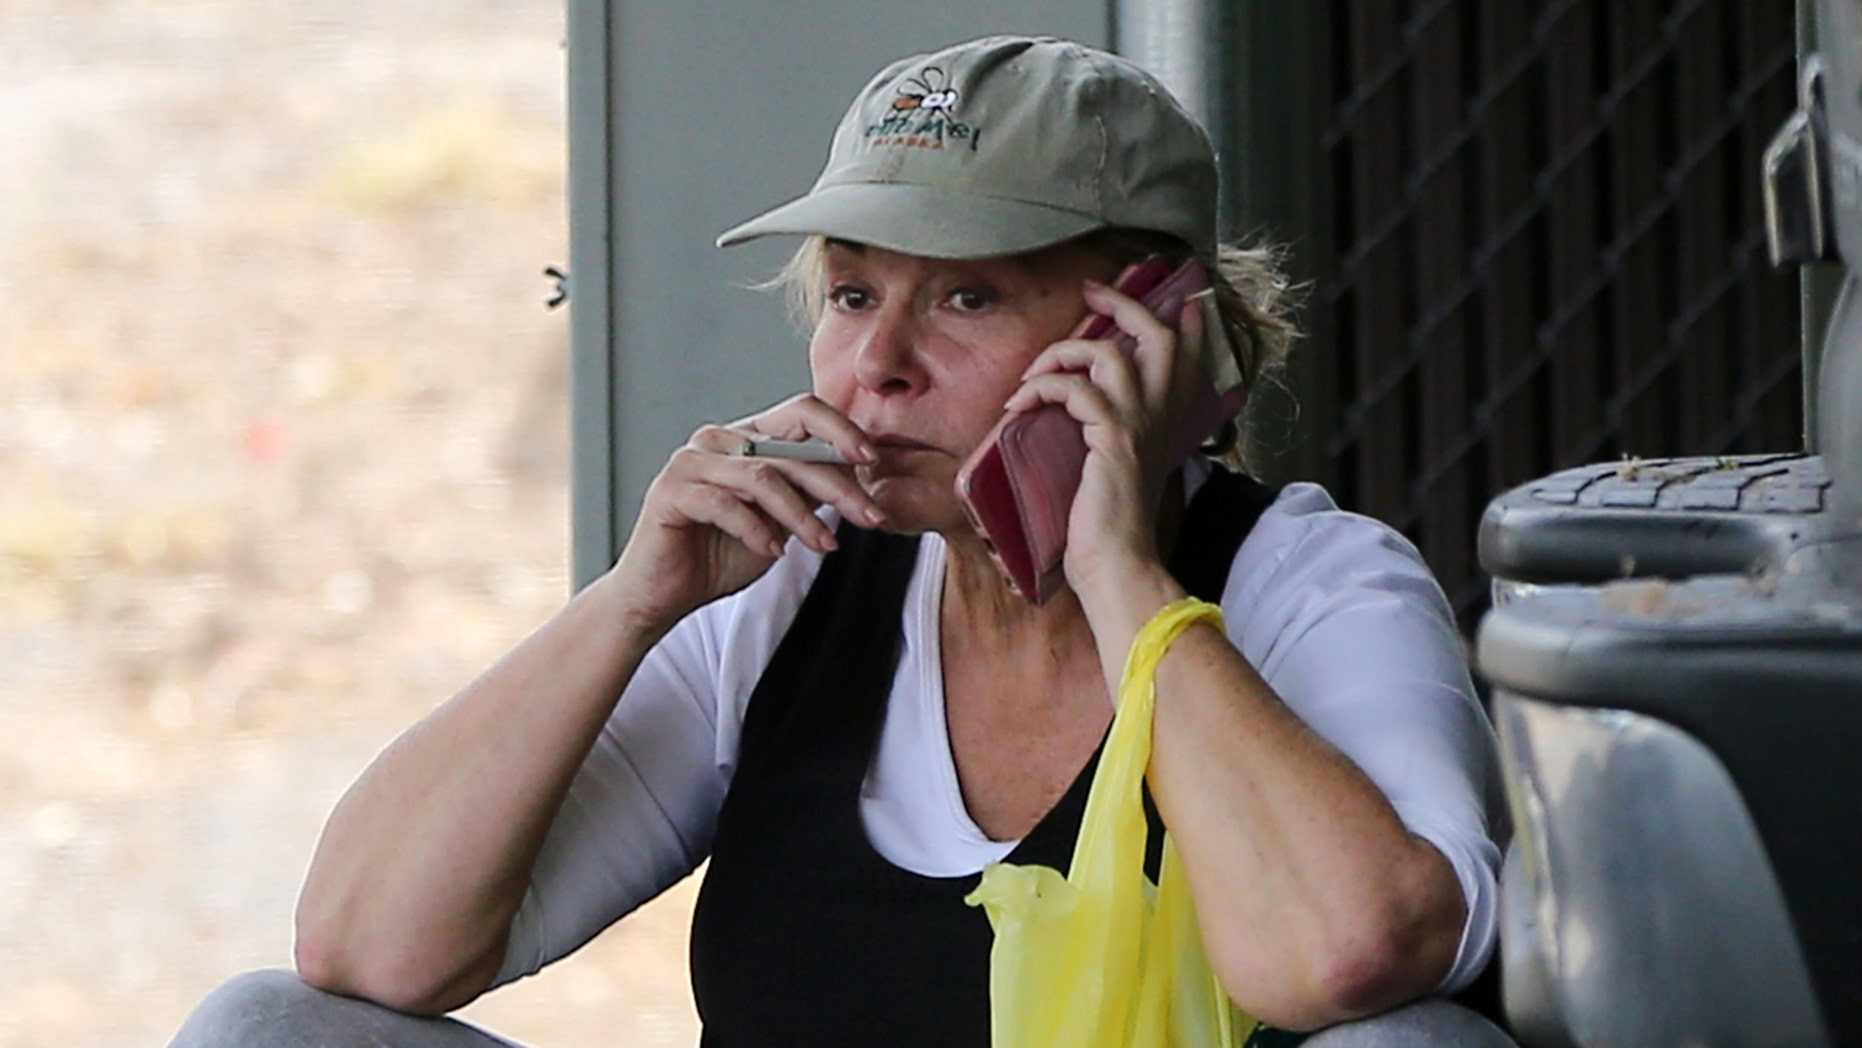 The visibly stressed Roseanne is seen sitting on a curb in a hat, cuffed jeans and flip flops talking a phone call while smoking a cigarette.